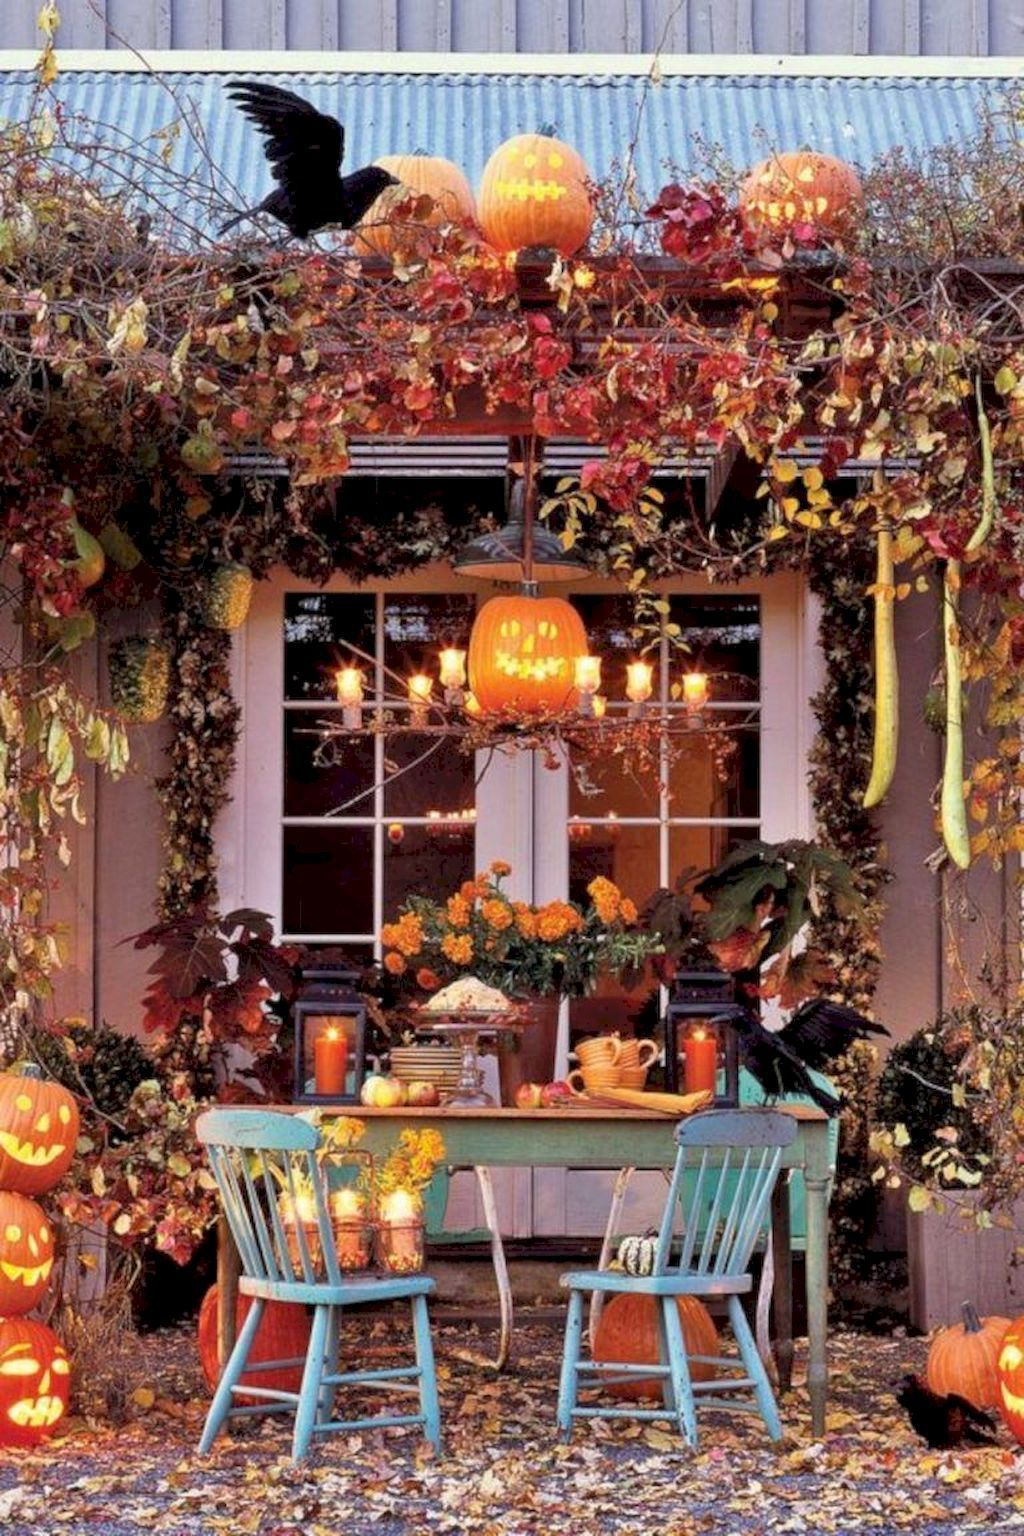 05 Beautiful Outdoor Halloween Decoration Ideas Kooky and fun - Halloween Yard Decorations Ideas